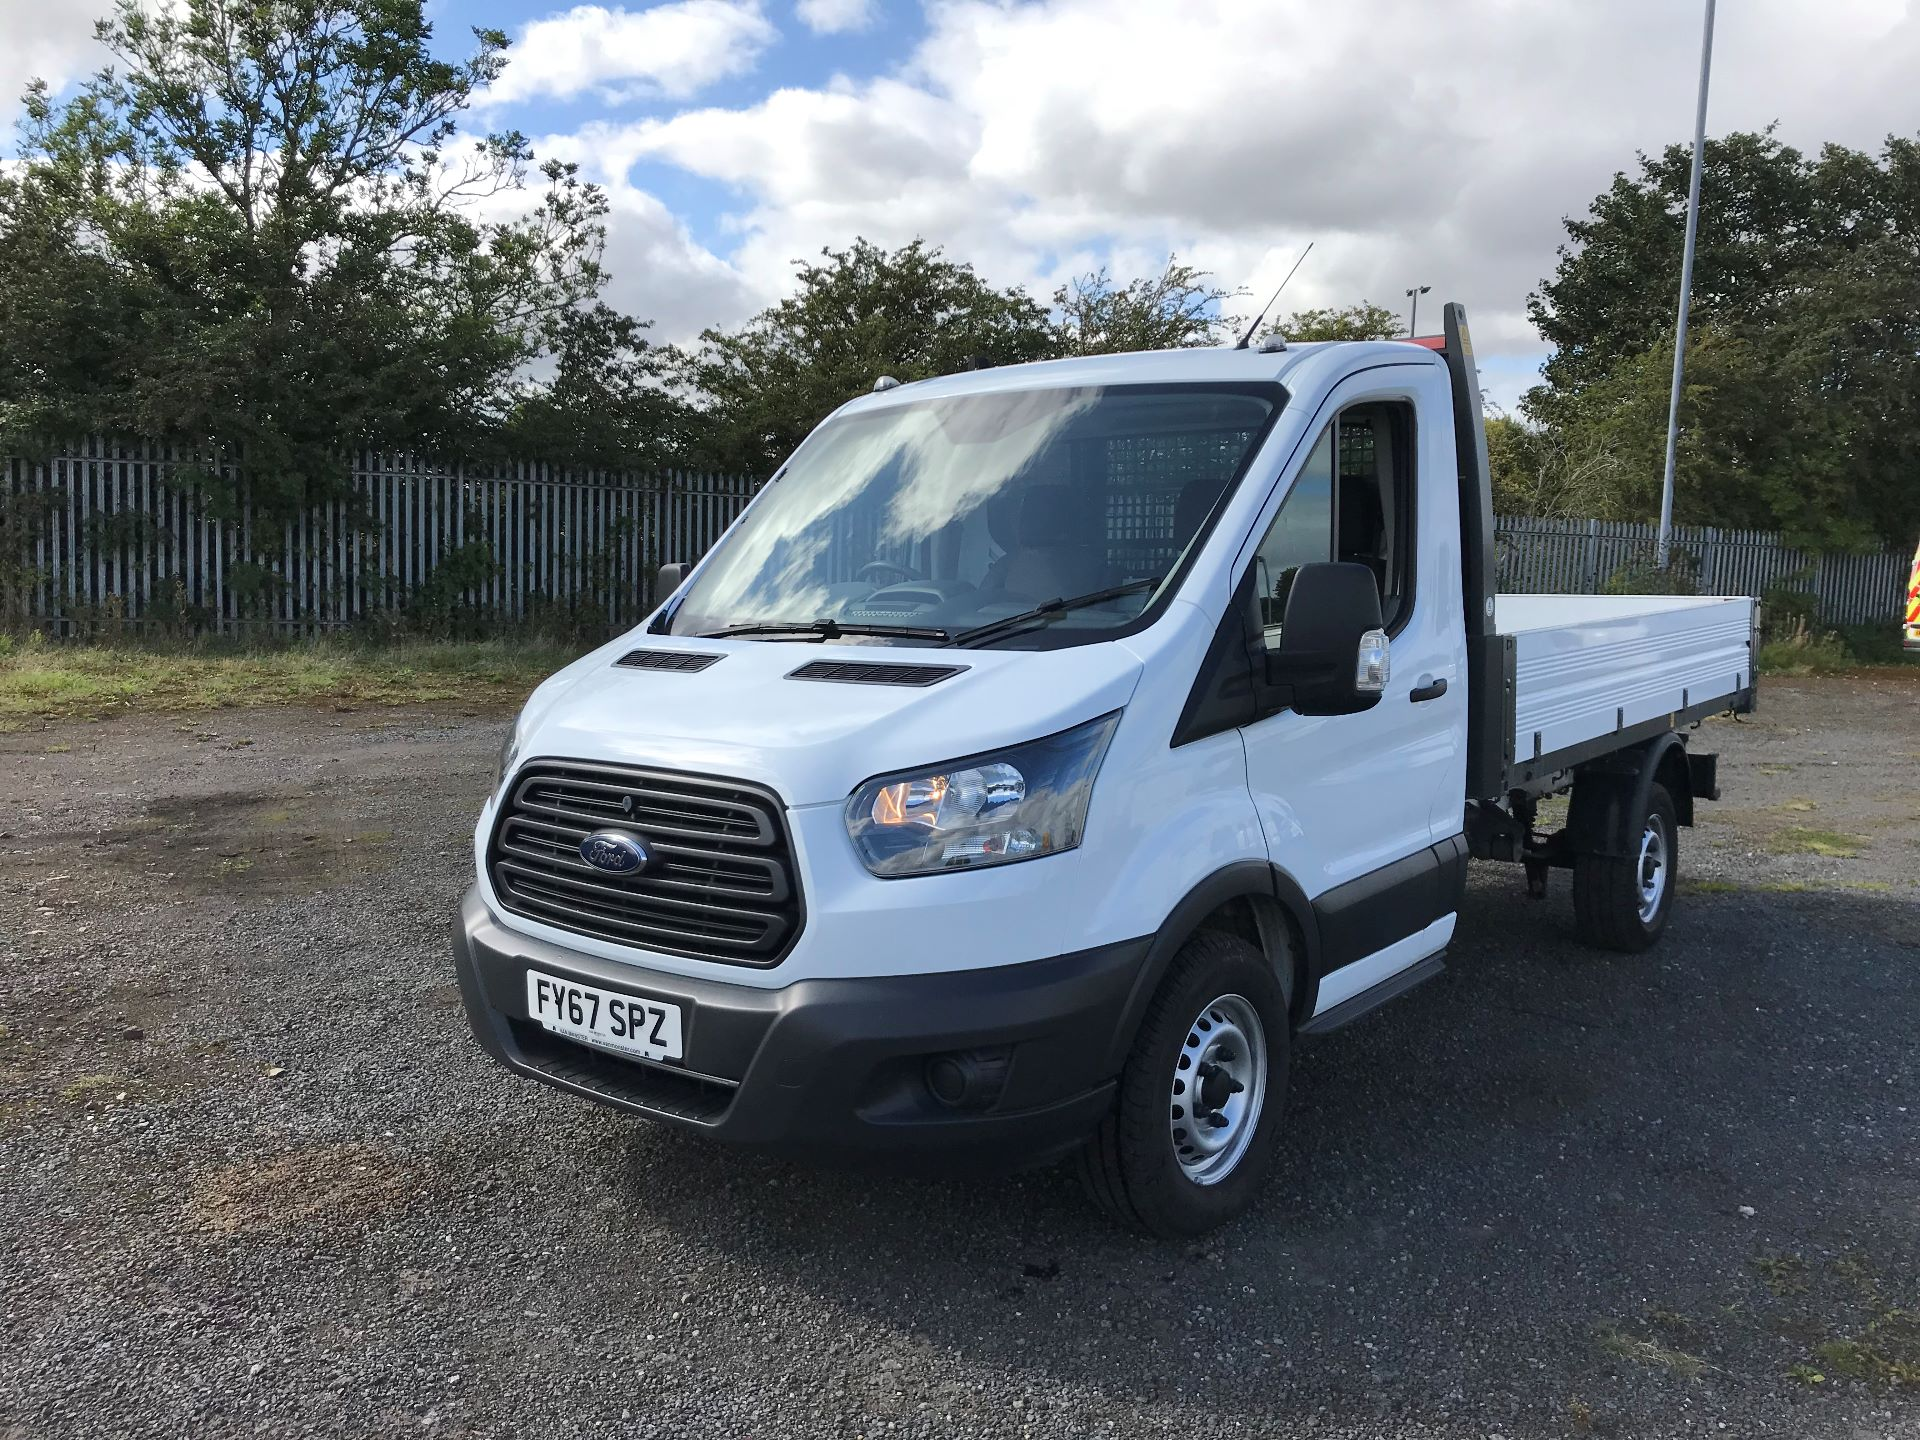 2018 Ford Transit 2.0 Tdci 130Ps Tipper (FY67SPZ) Thumbnail 3